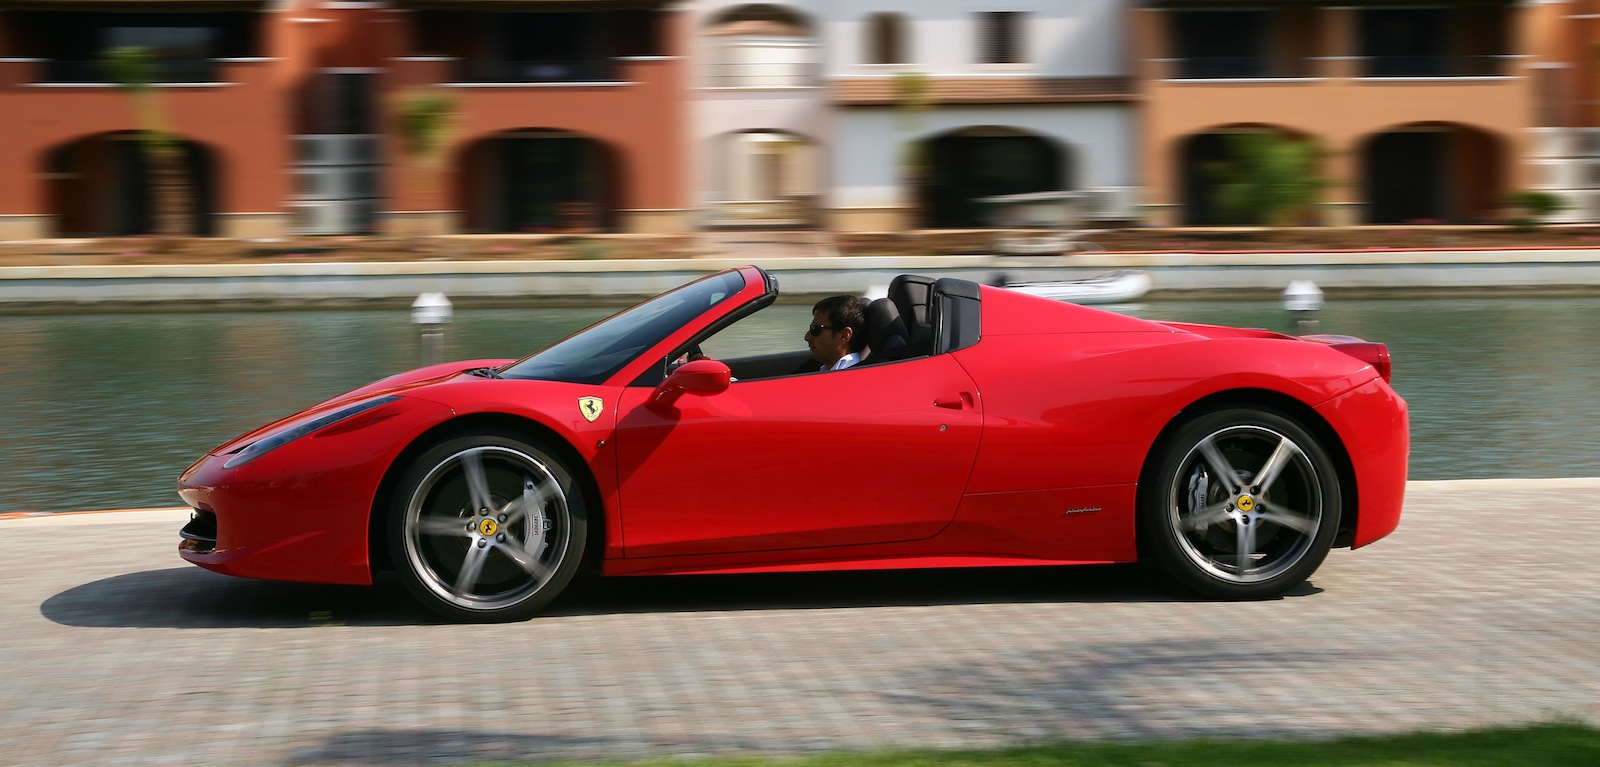 2017 Ferrari 458 Spider photo - 4